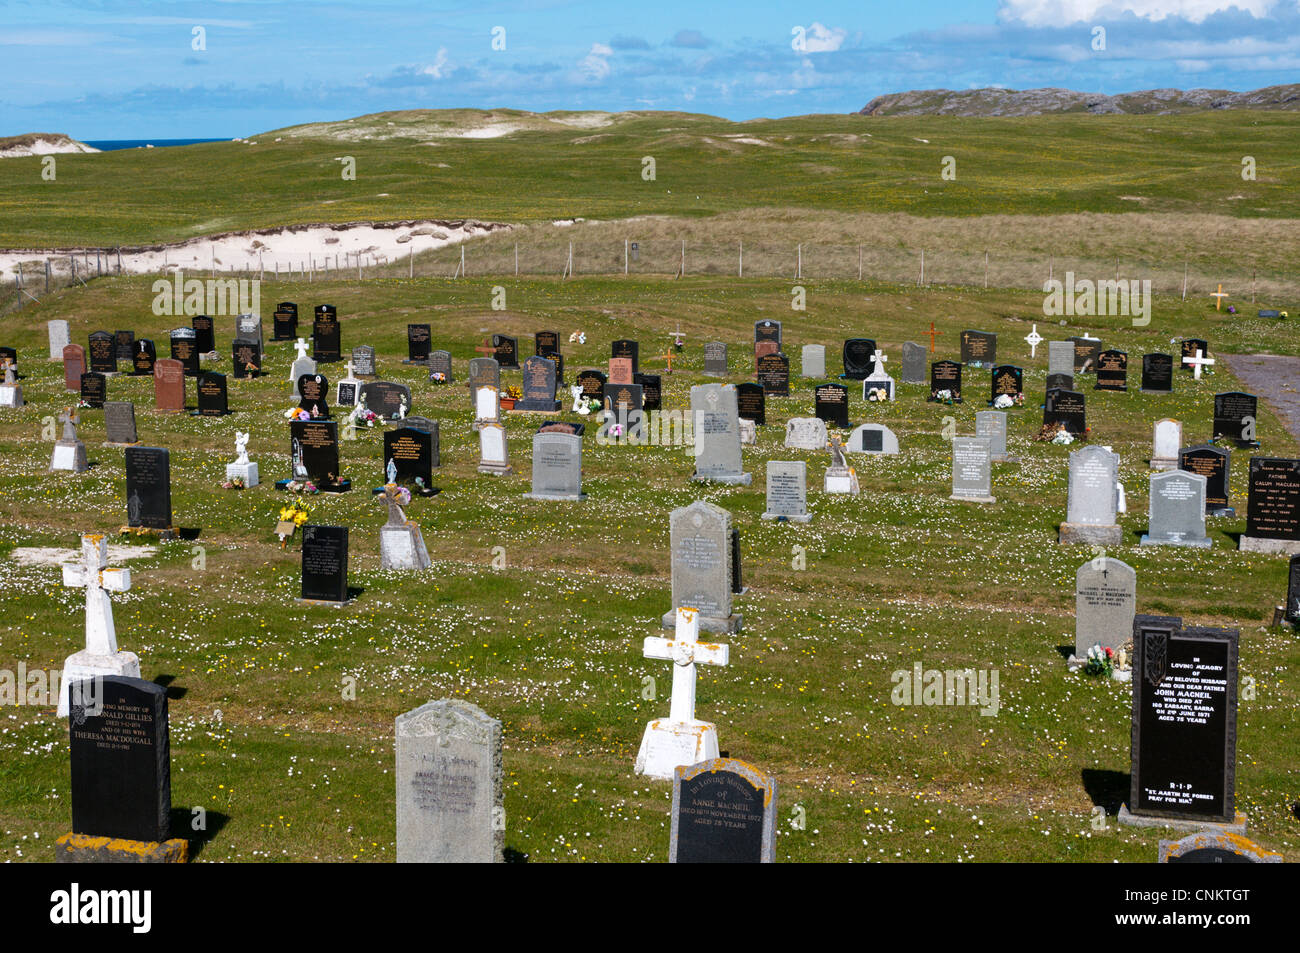 Cemetery on the machair at Allathasdale on west coast of Barra in the Outer Hebrides. - Stock Image